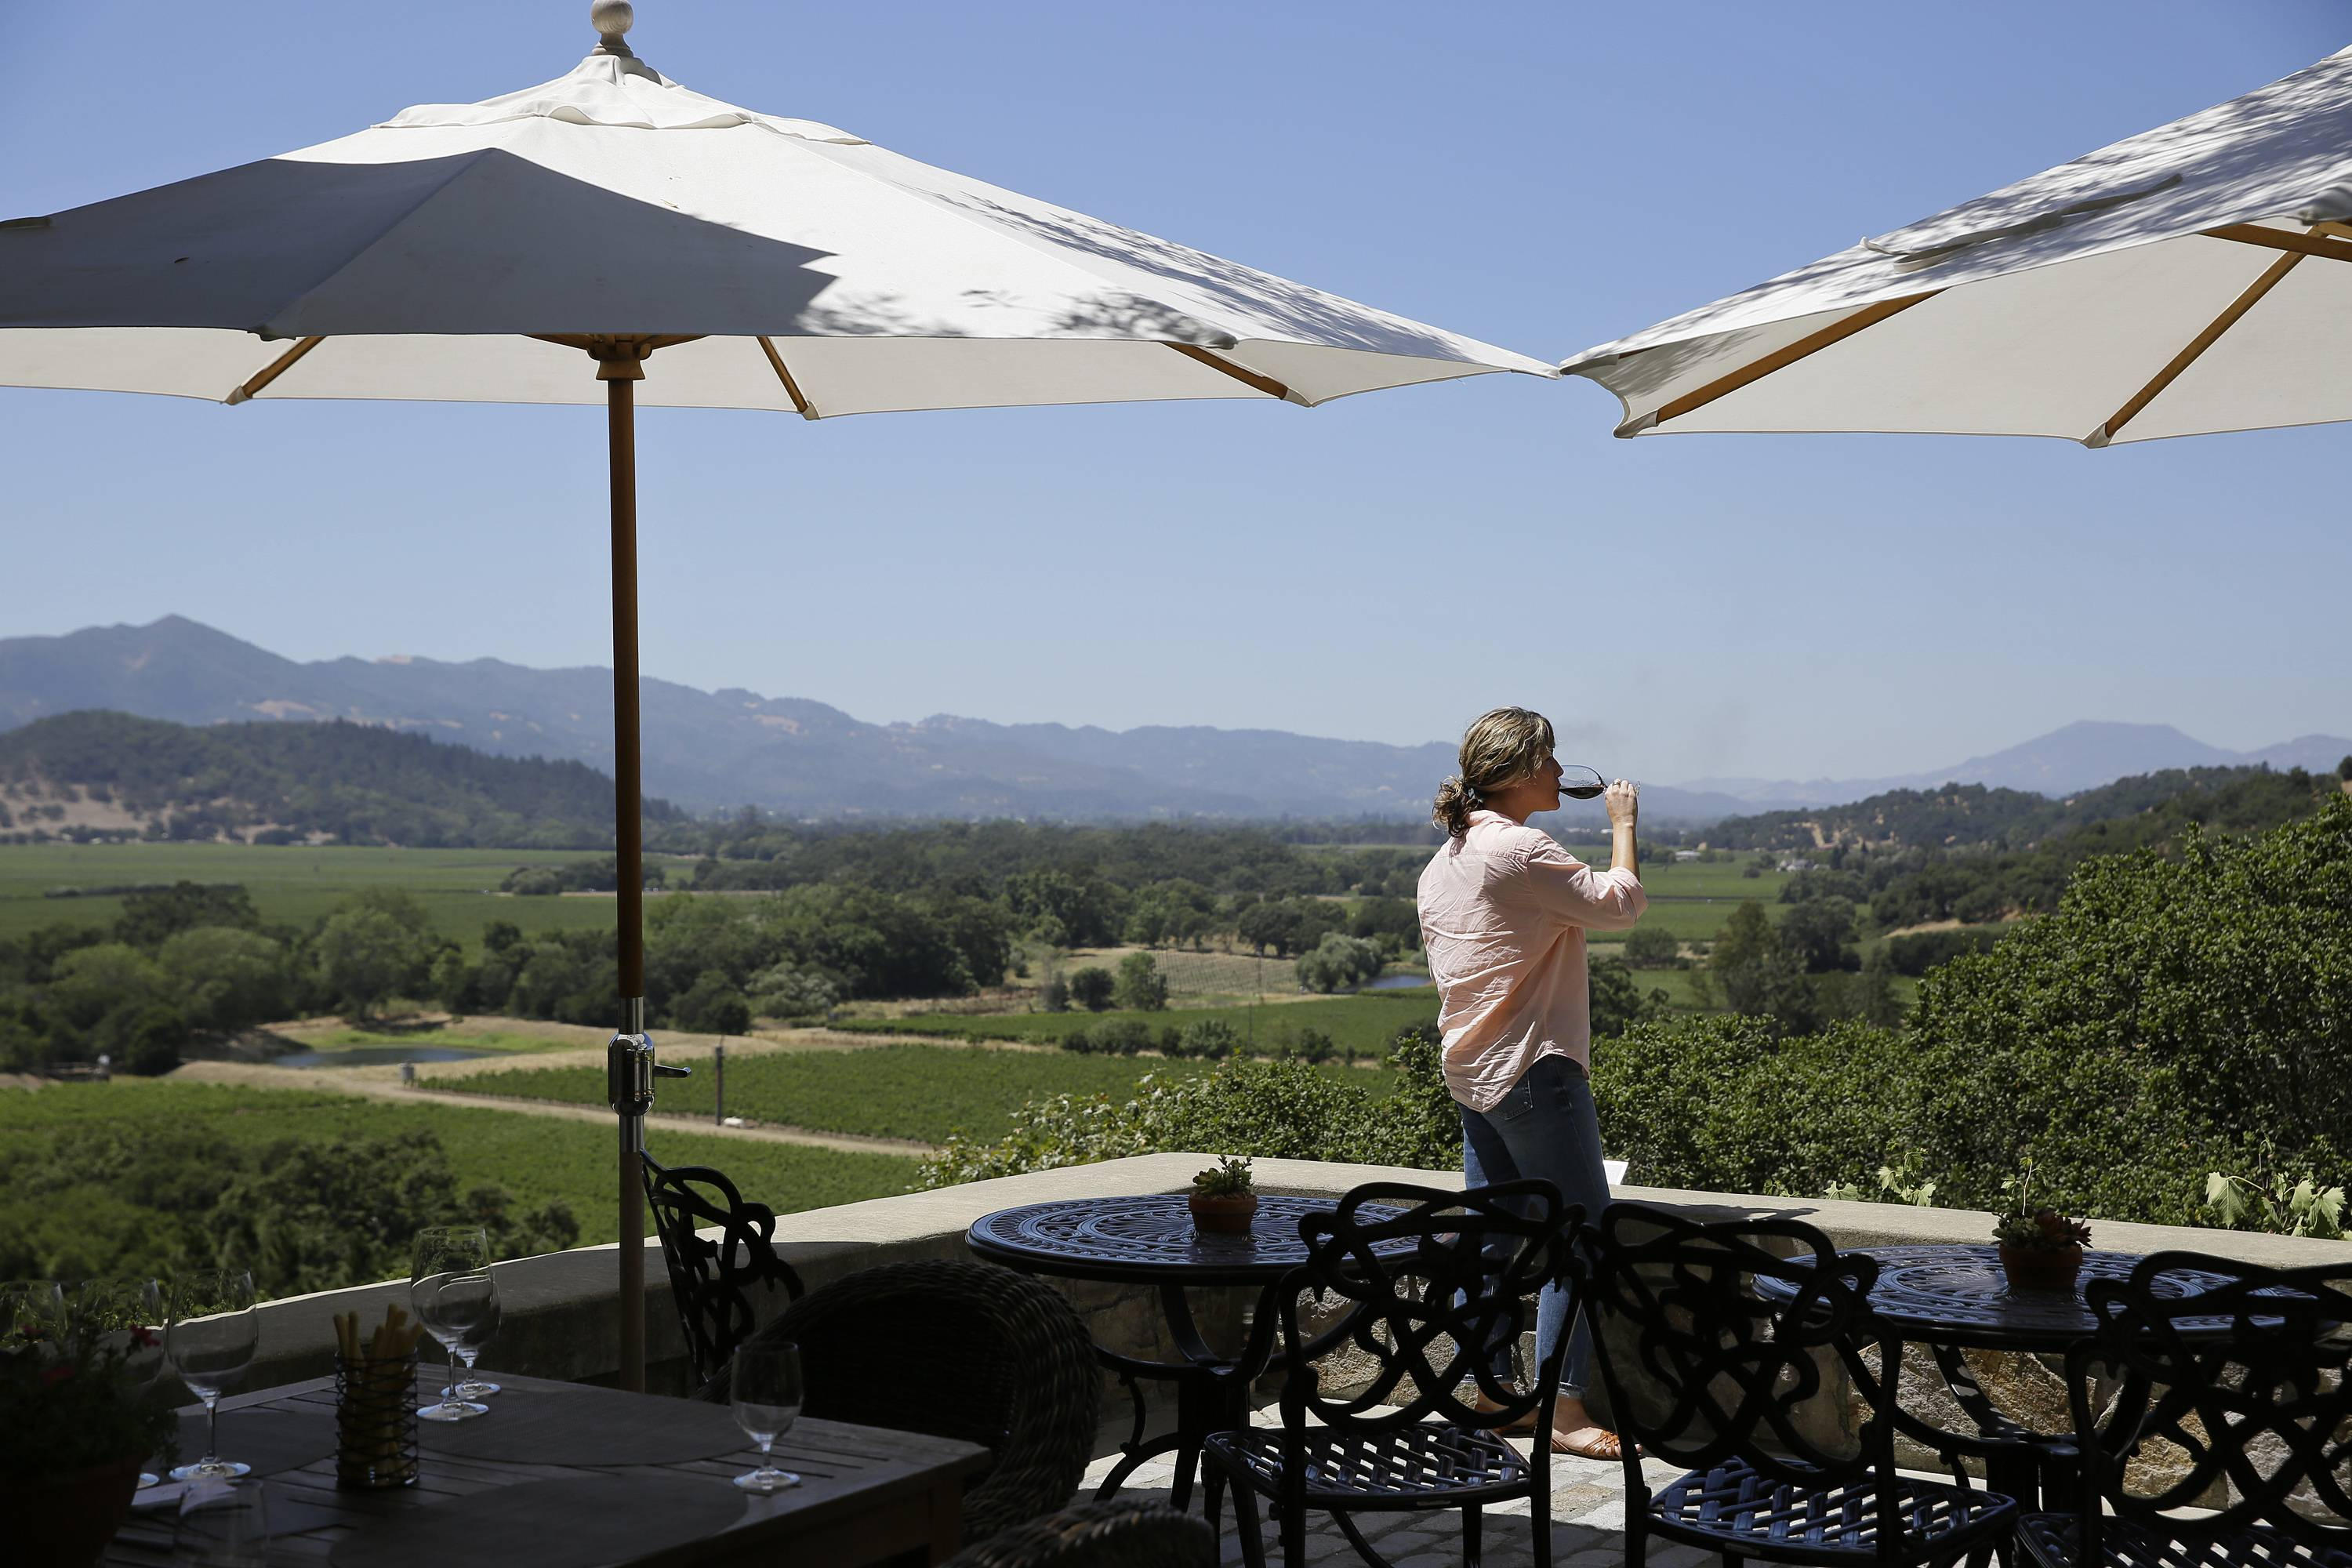 A woman drinks a glass of wine and takes in the view from the tasting room terrace at Silverado Vineyards in Napa, Calif.